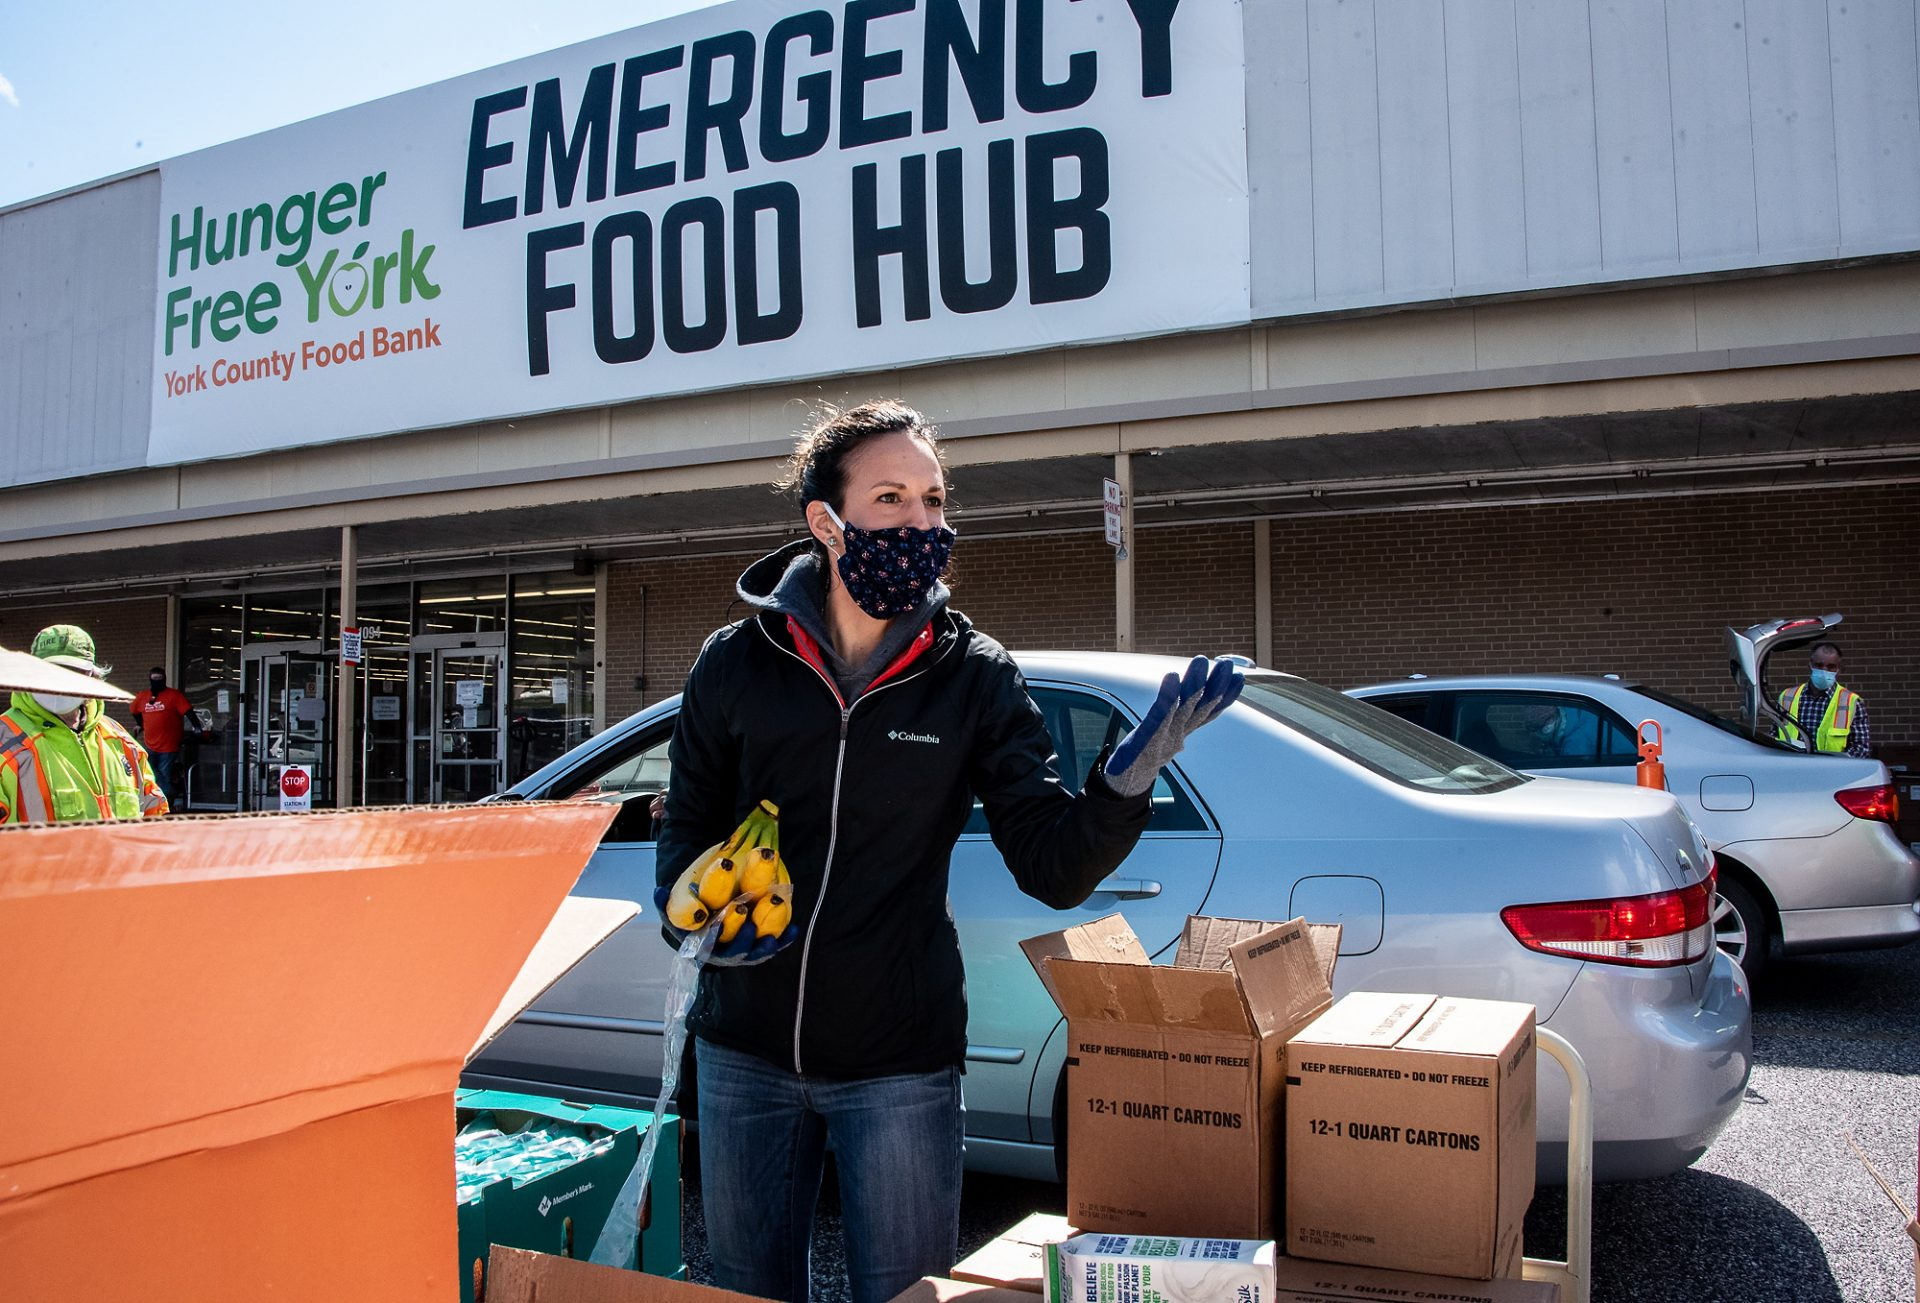 A volunteer helps prepare food boxes at a distribution event in York County.